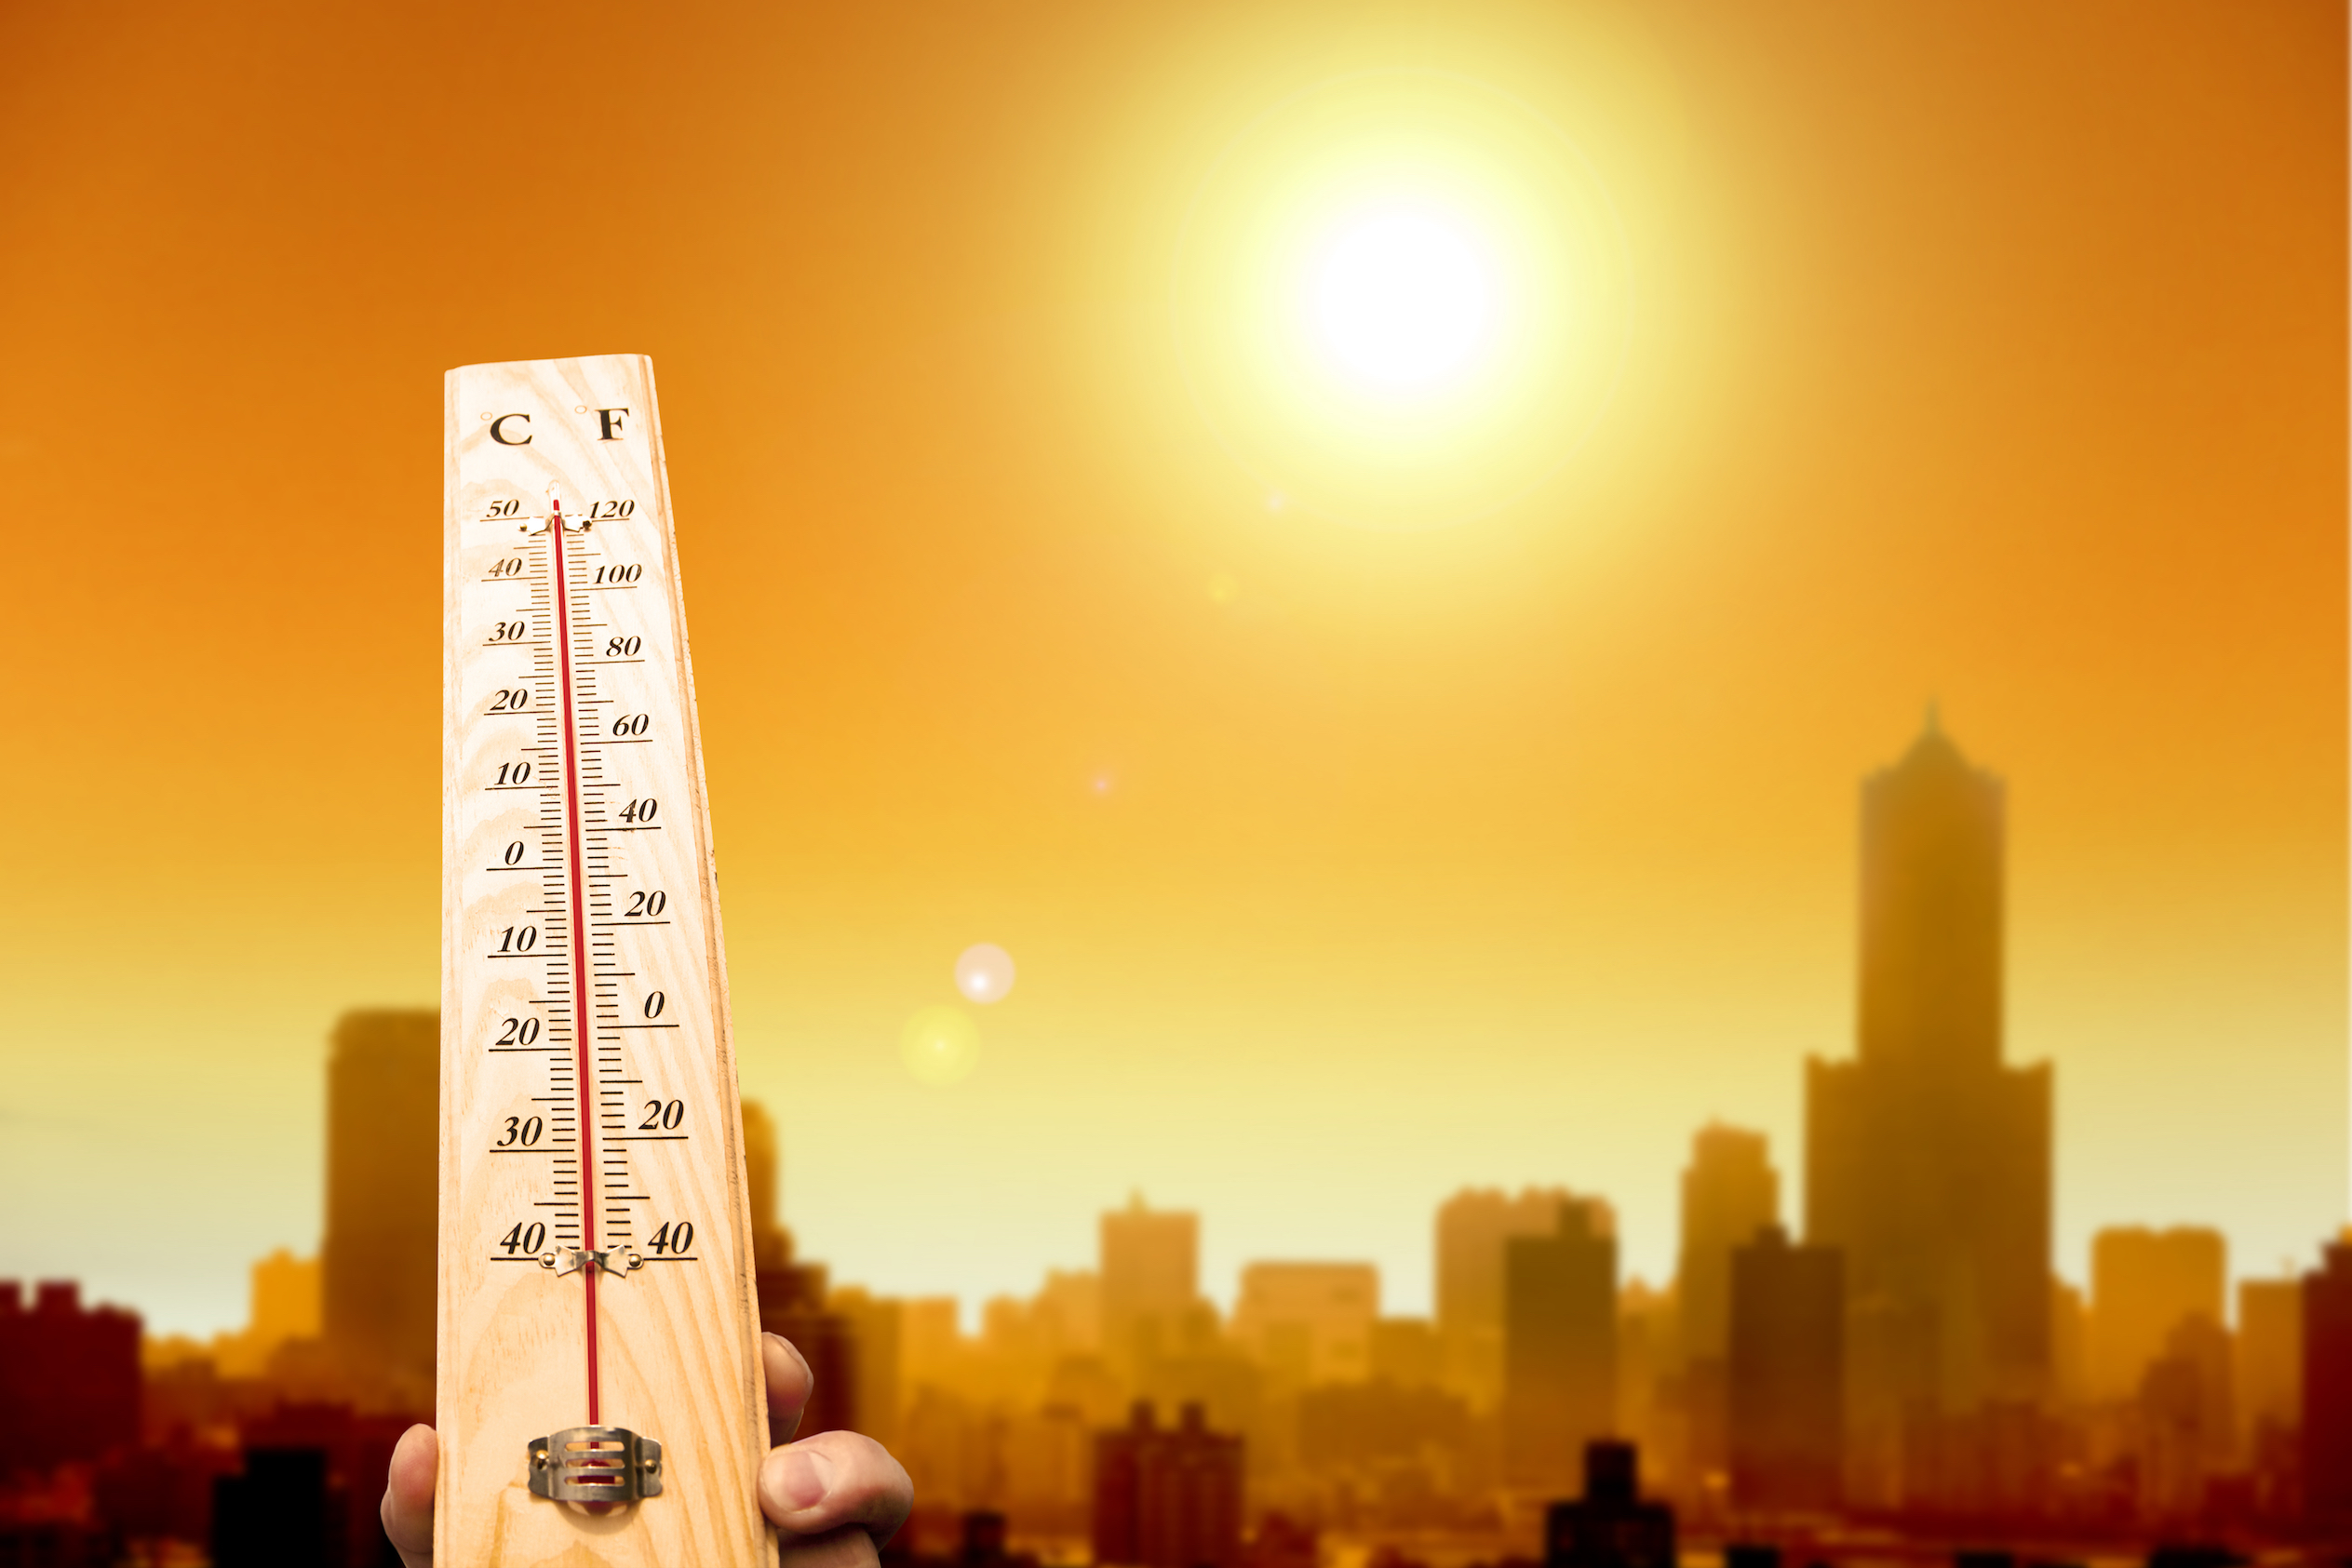 According to the latest report, 2016 marks the hottest year on record, breaking 2015's record high temperatures.